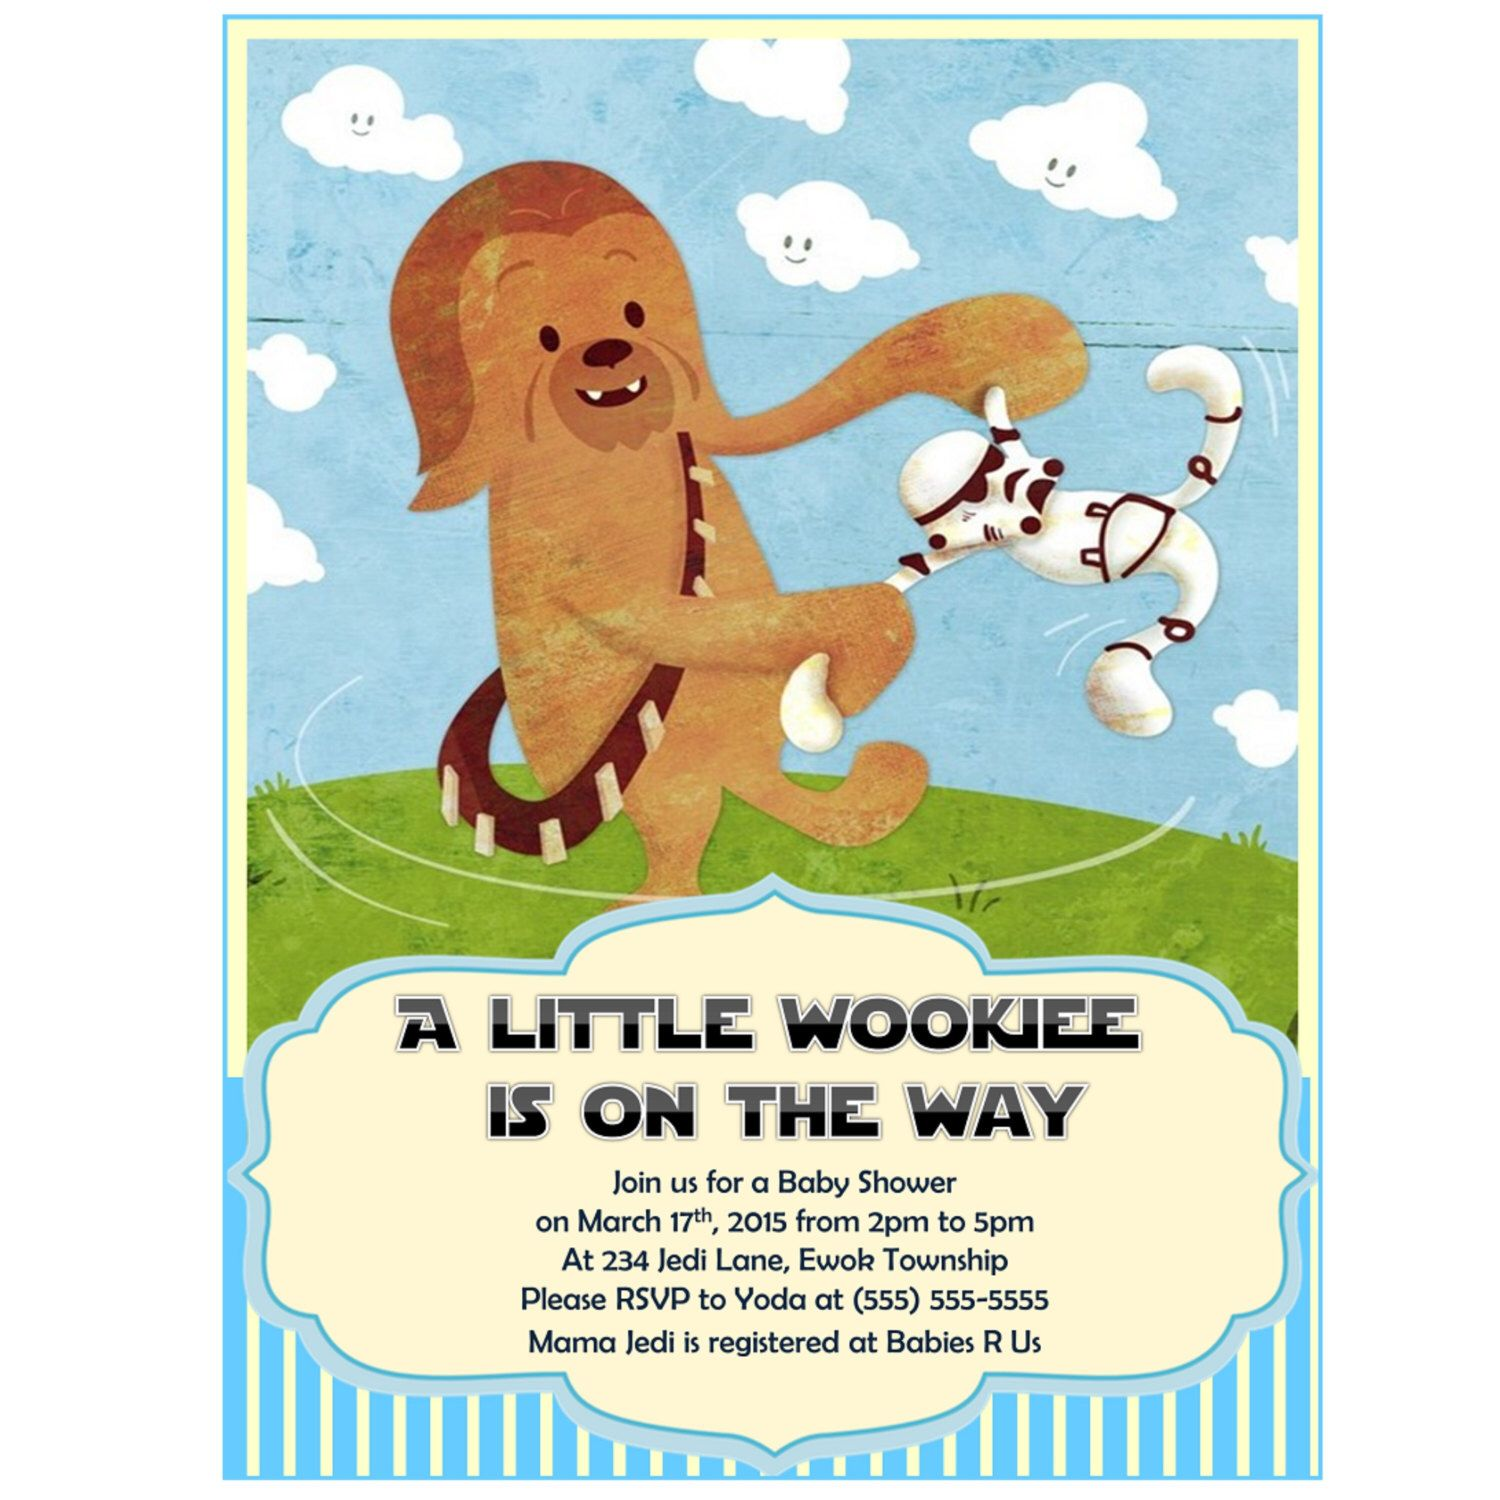 Star Wars Baby Shower Invitation Chewbacca Boy Baby Shower